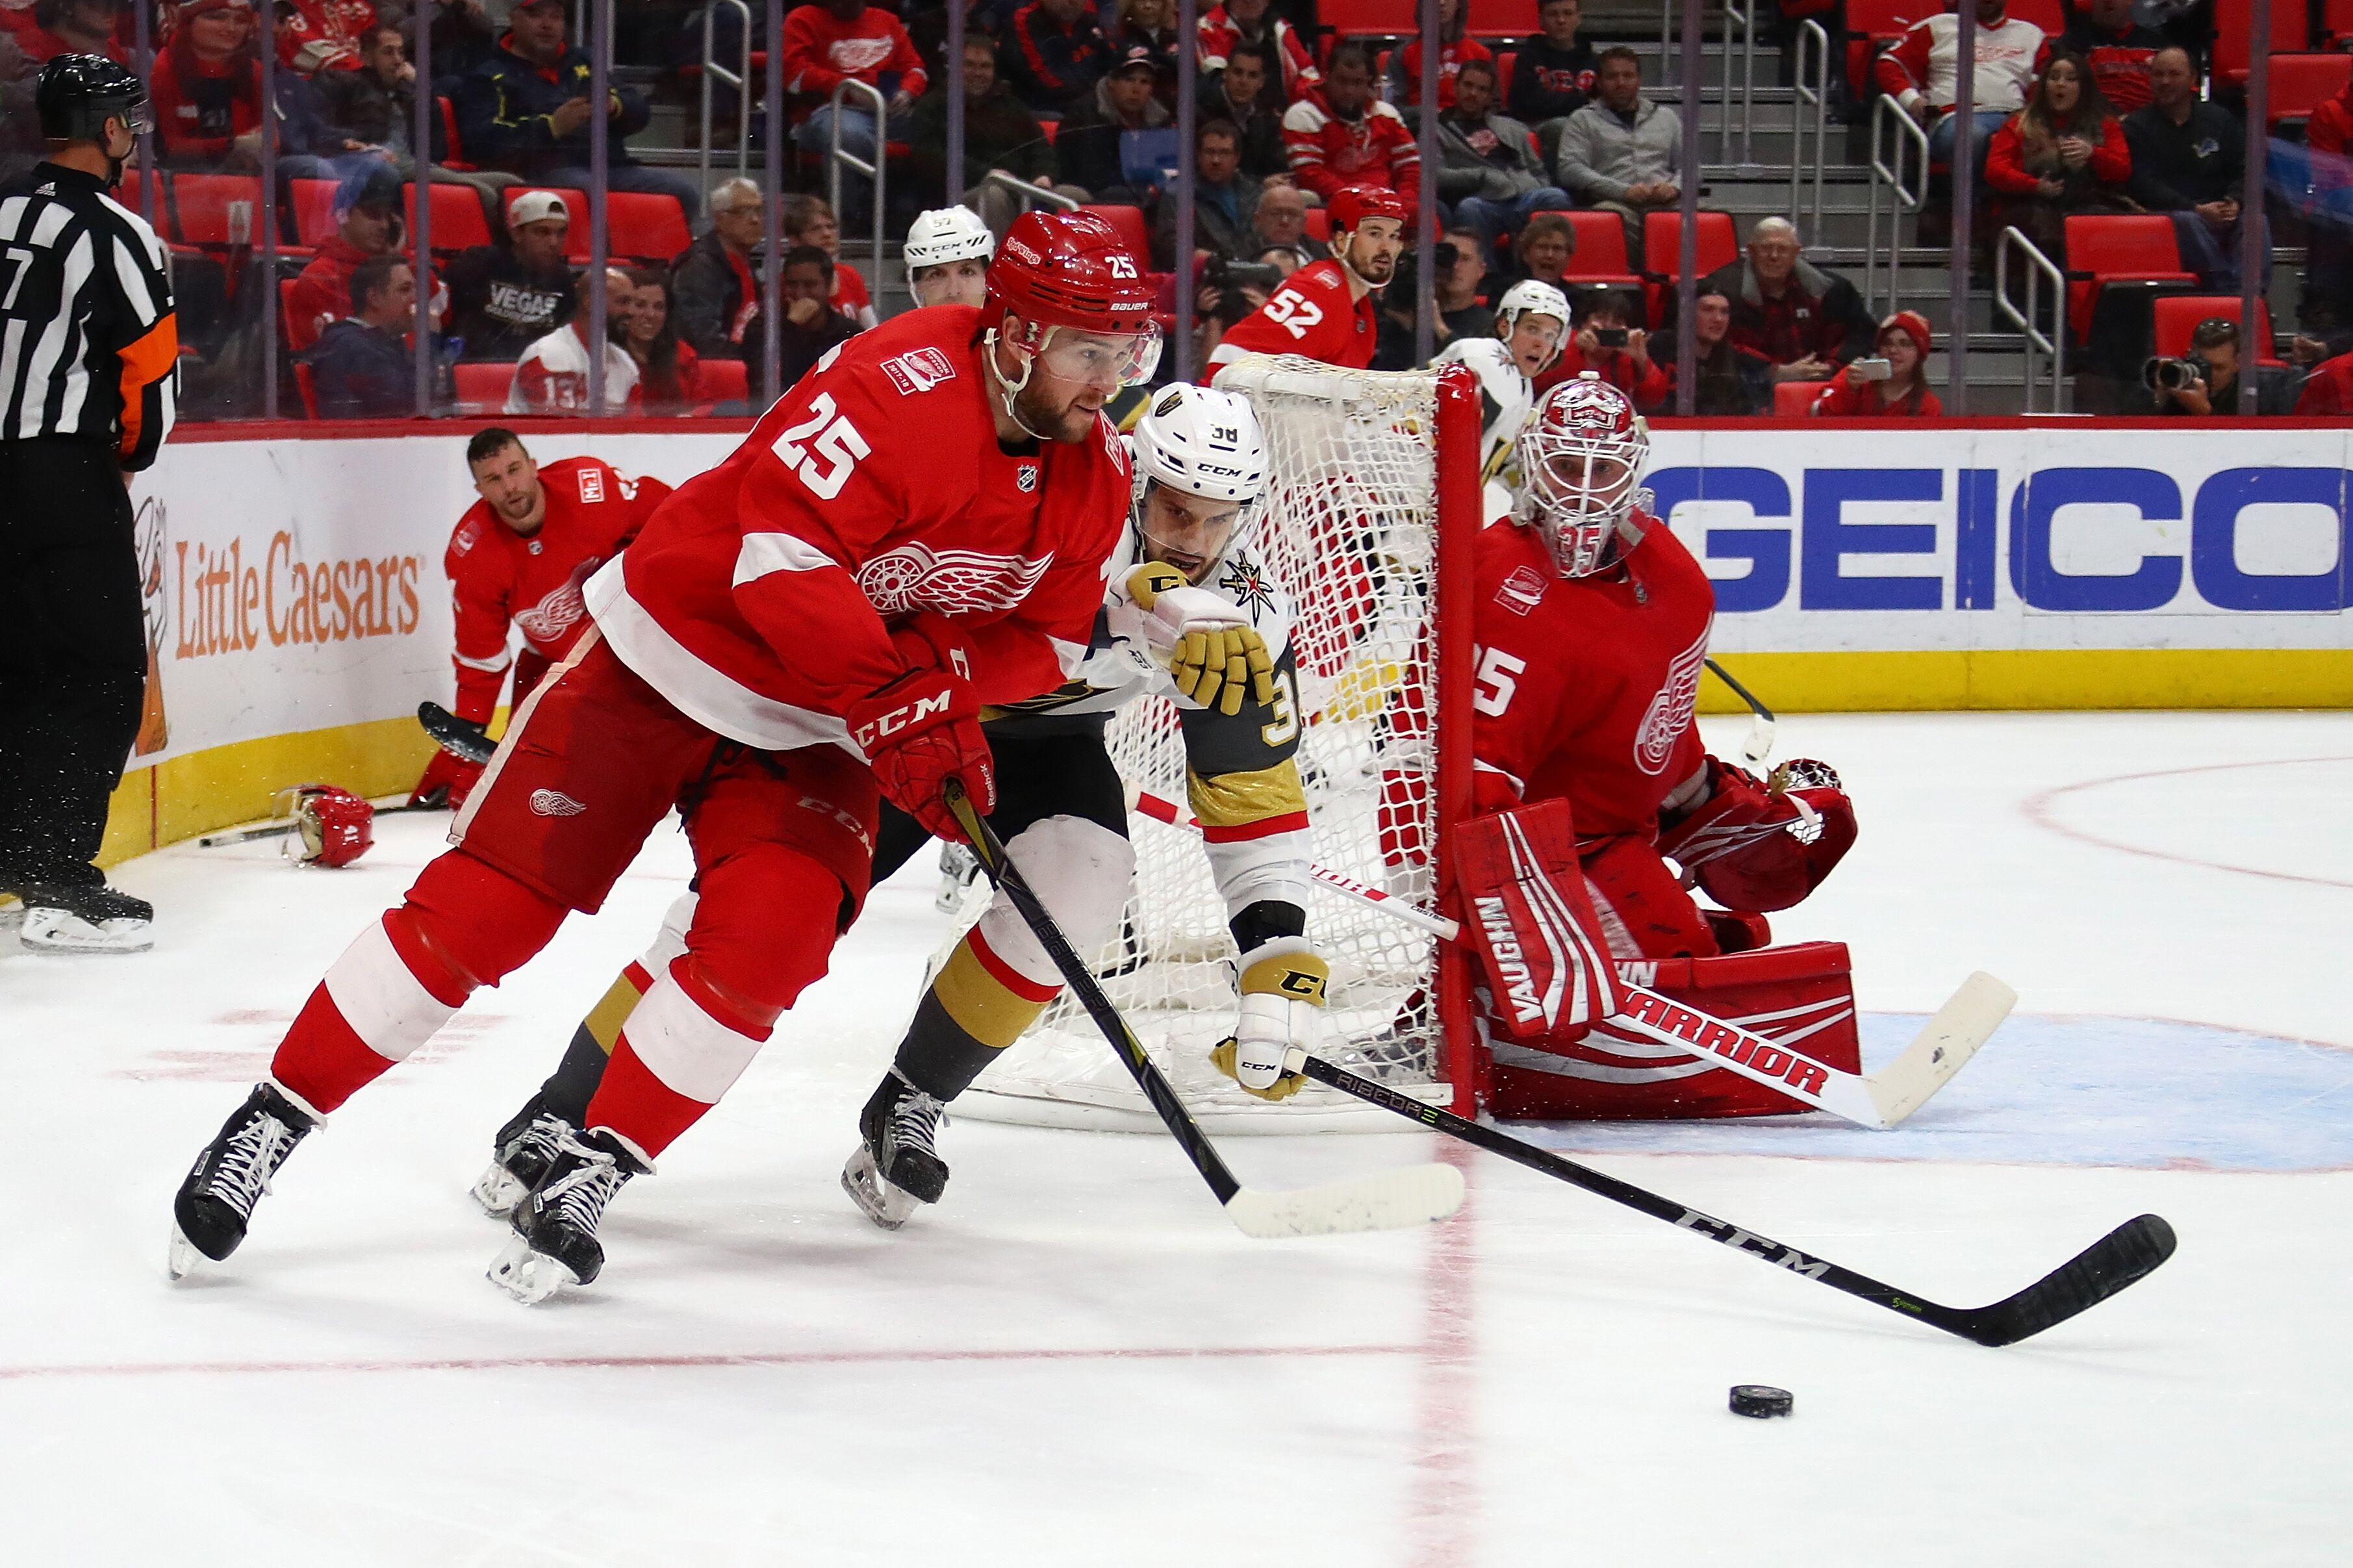 Speaking, red wings and golden showers with